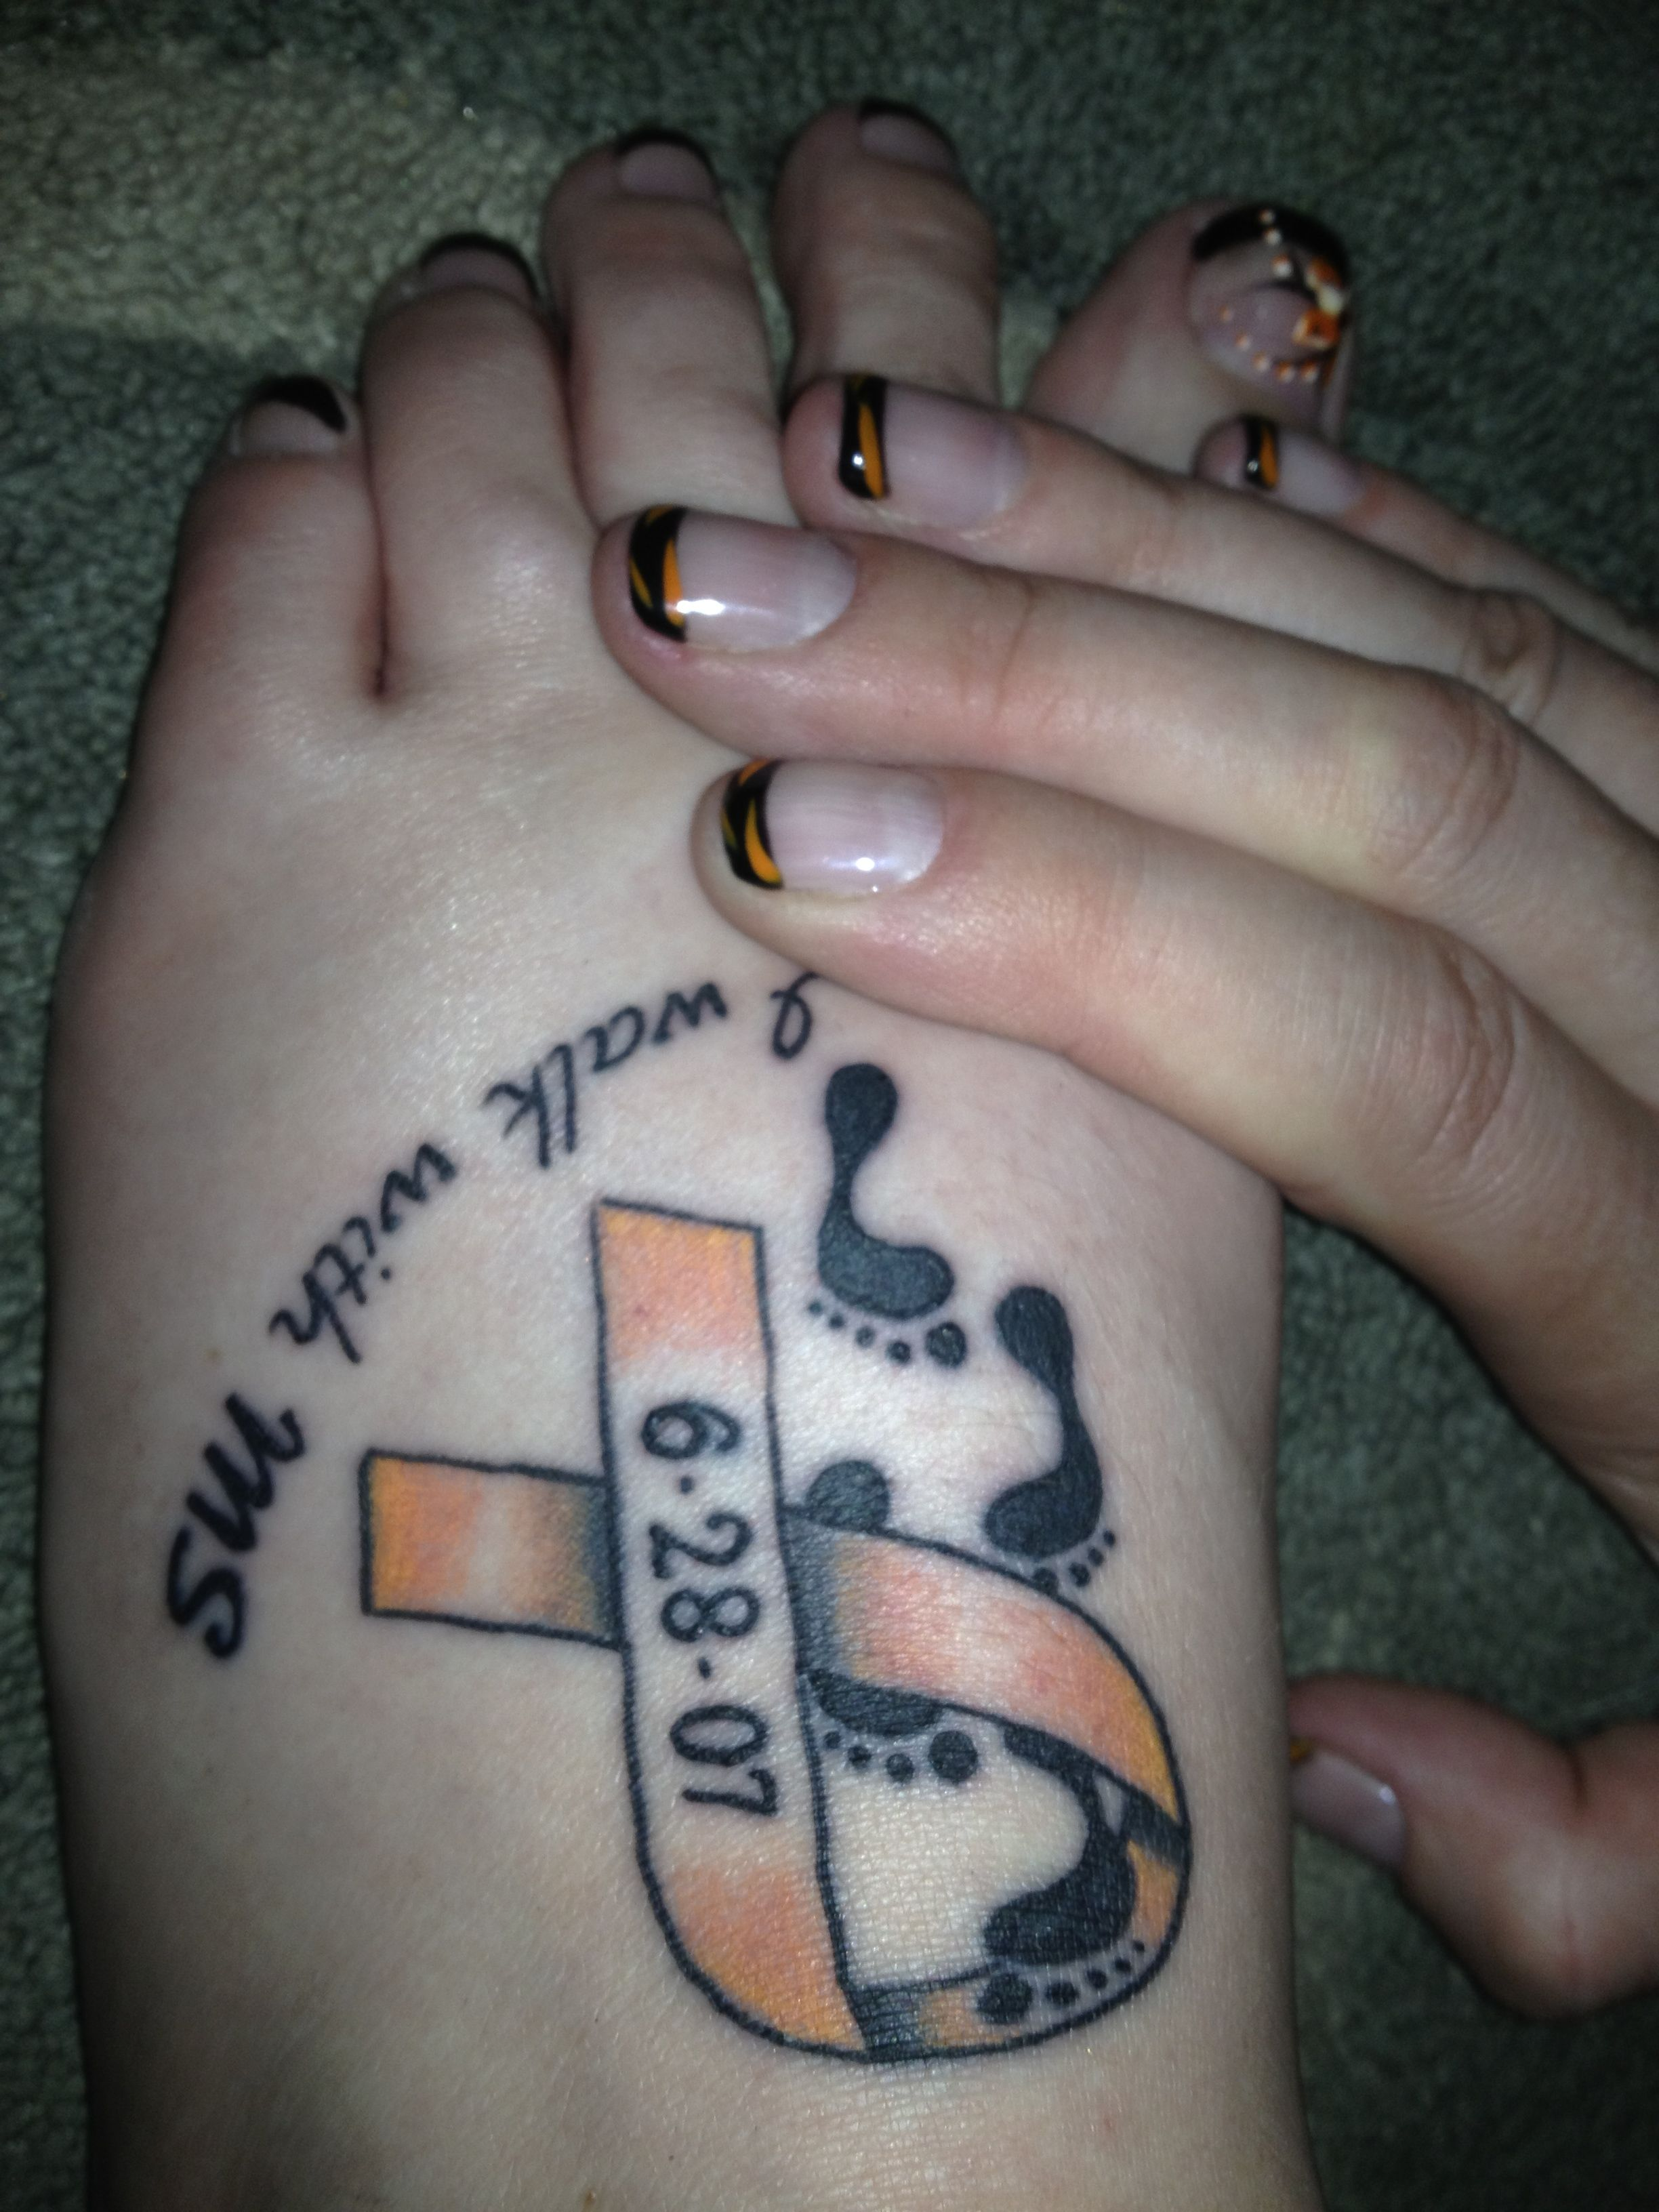 9d072b457a154 Foot Tattoo diagnosis date and MS ribbon. | Tattoos | Multiple ...